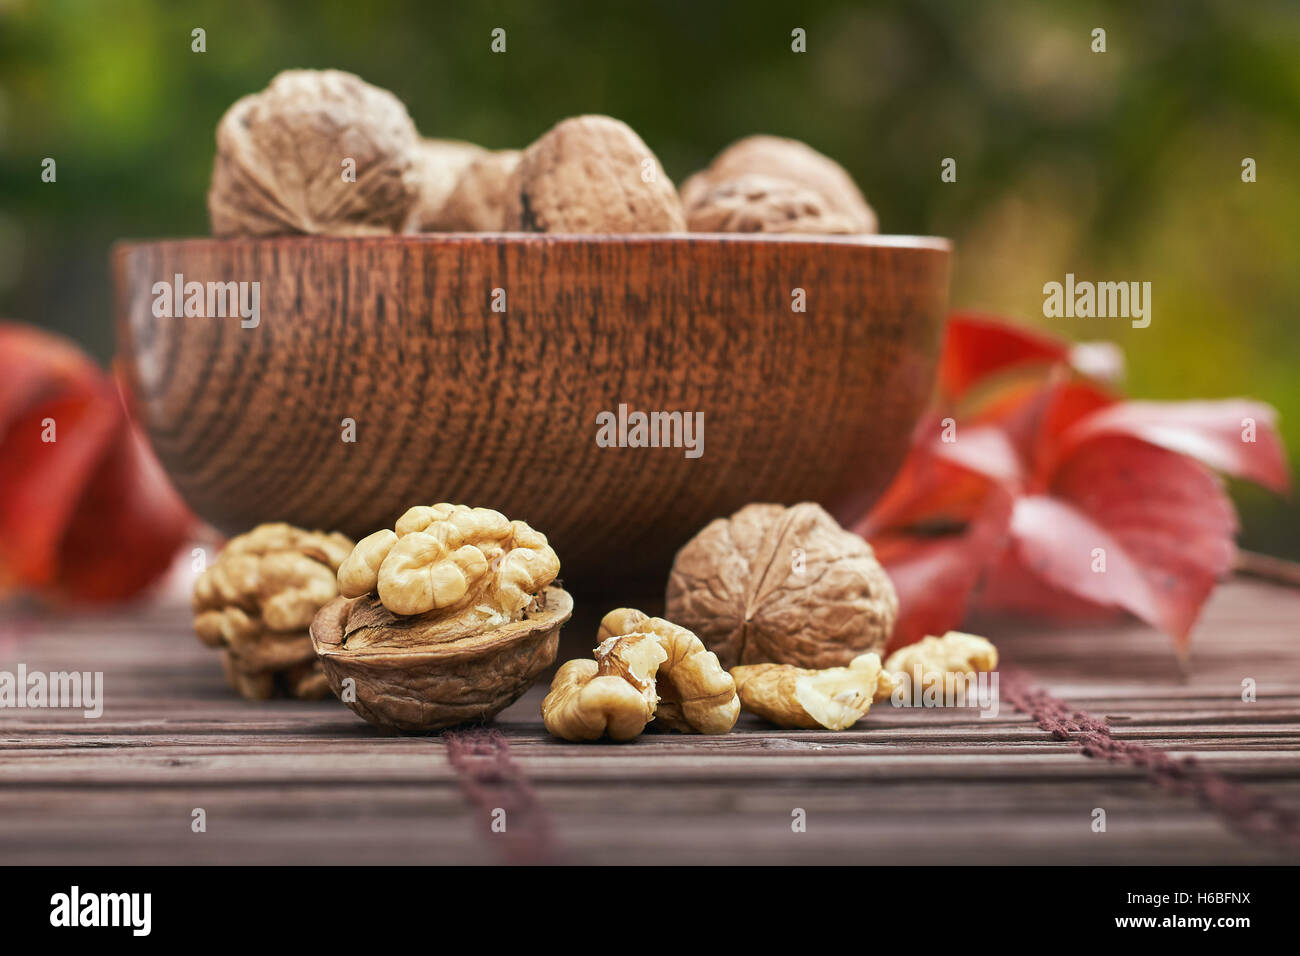 Walnuts in wooden bowl, green blurry background. - Stock Image